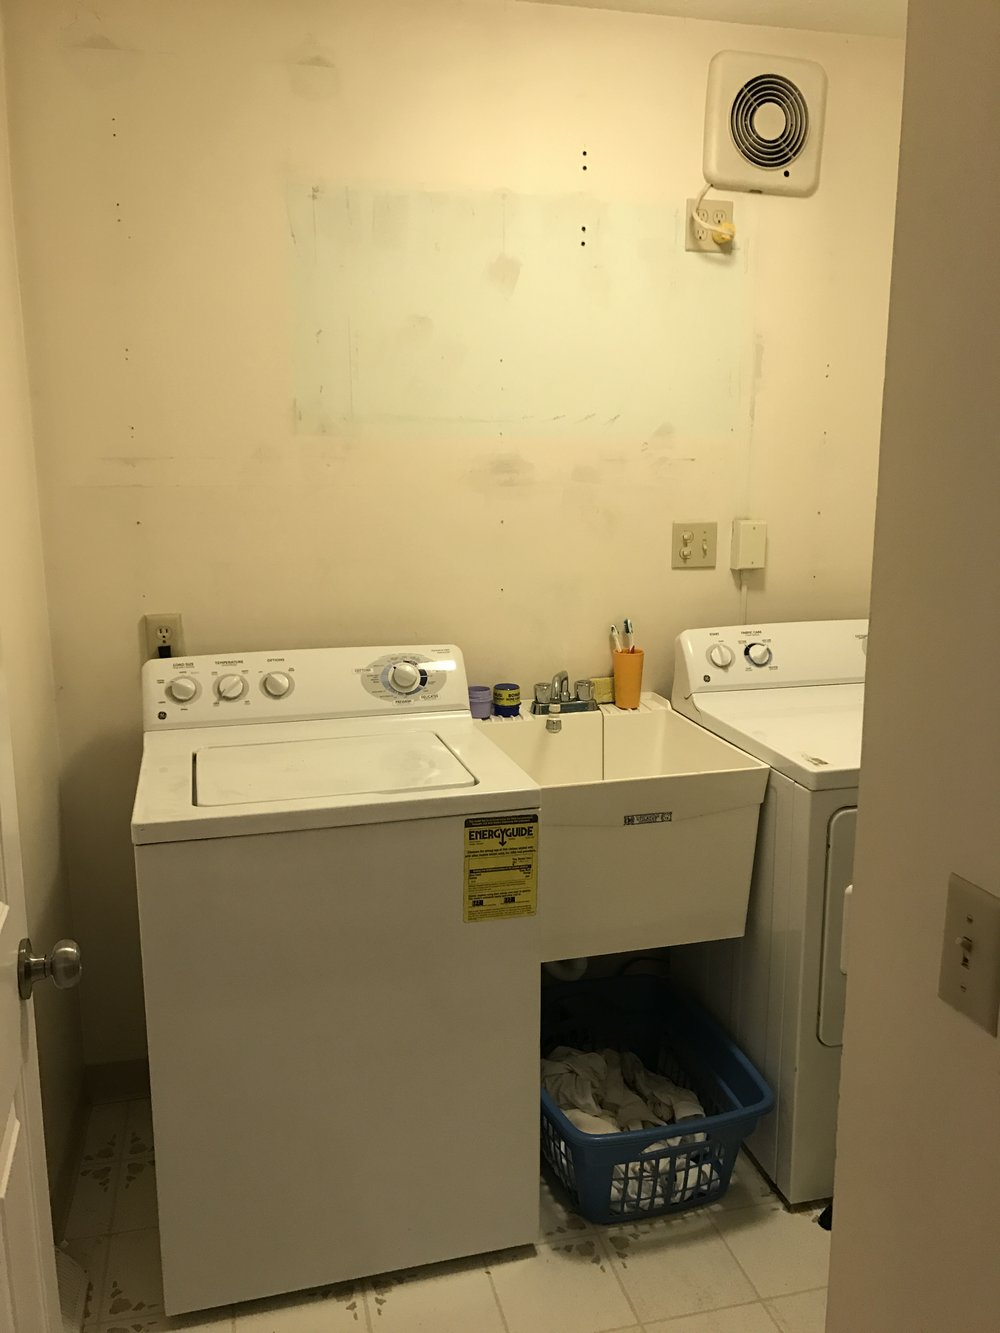 Don't judge the old washer and dryer. We got them 10 years ago when we were BROKE.